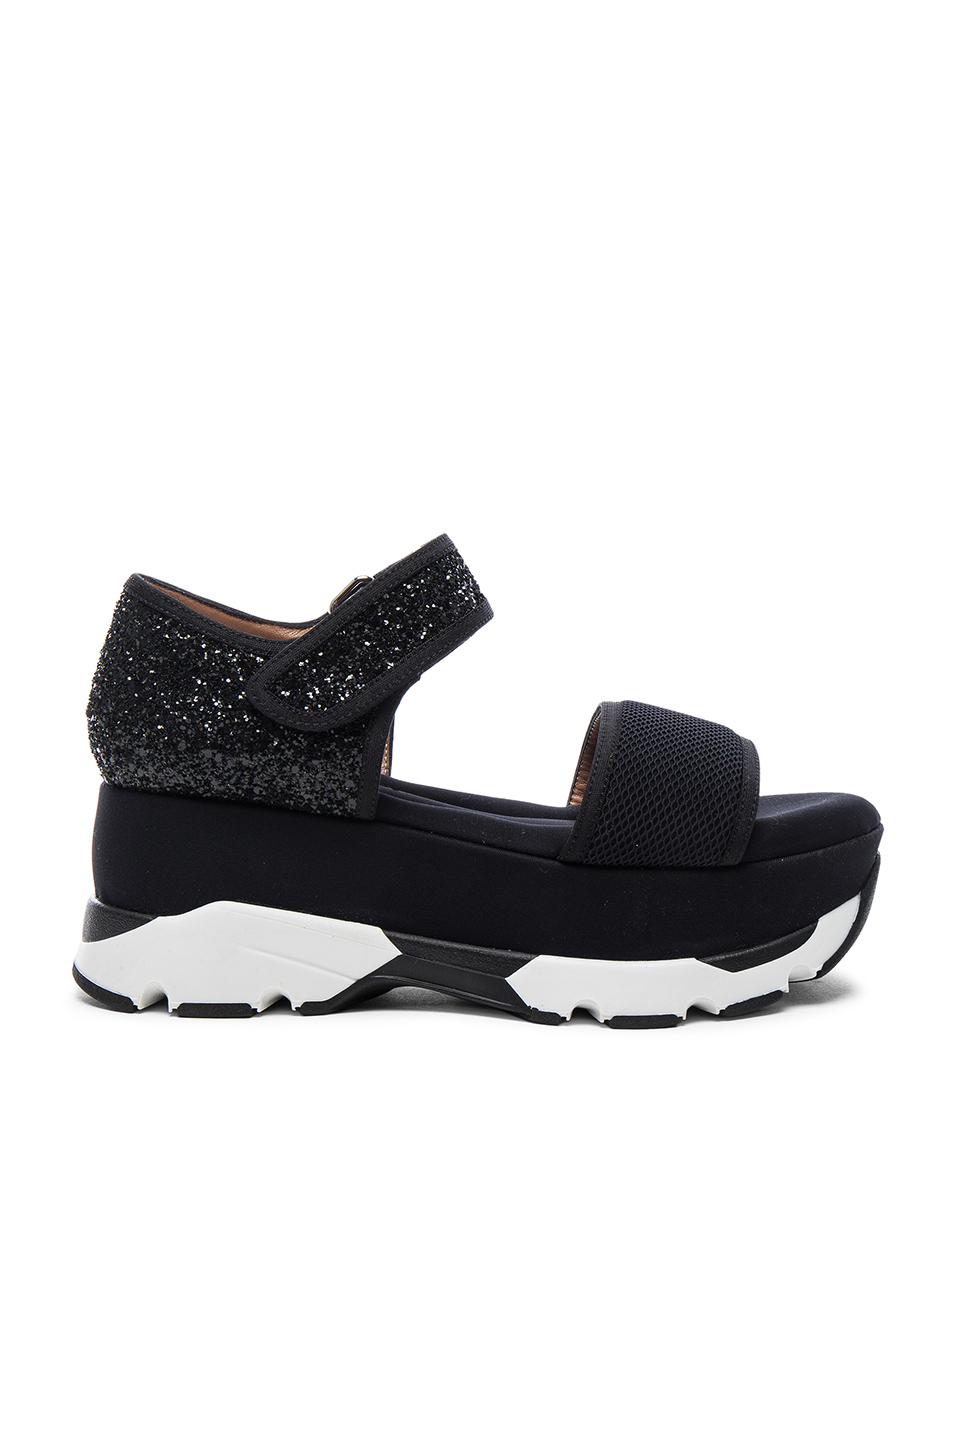 marni platform glitter sandals in black lyst